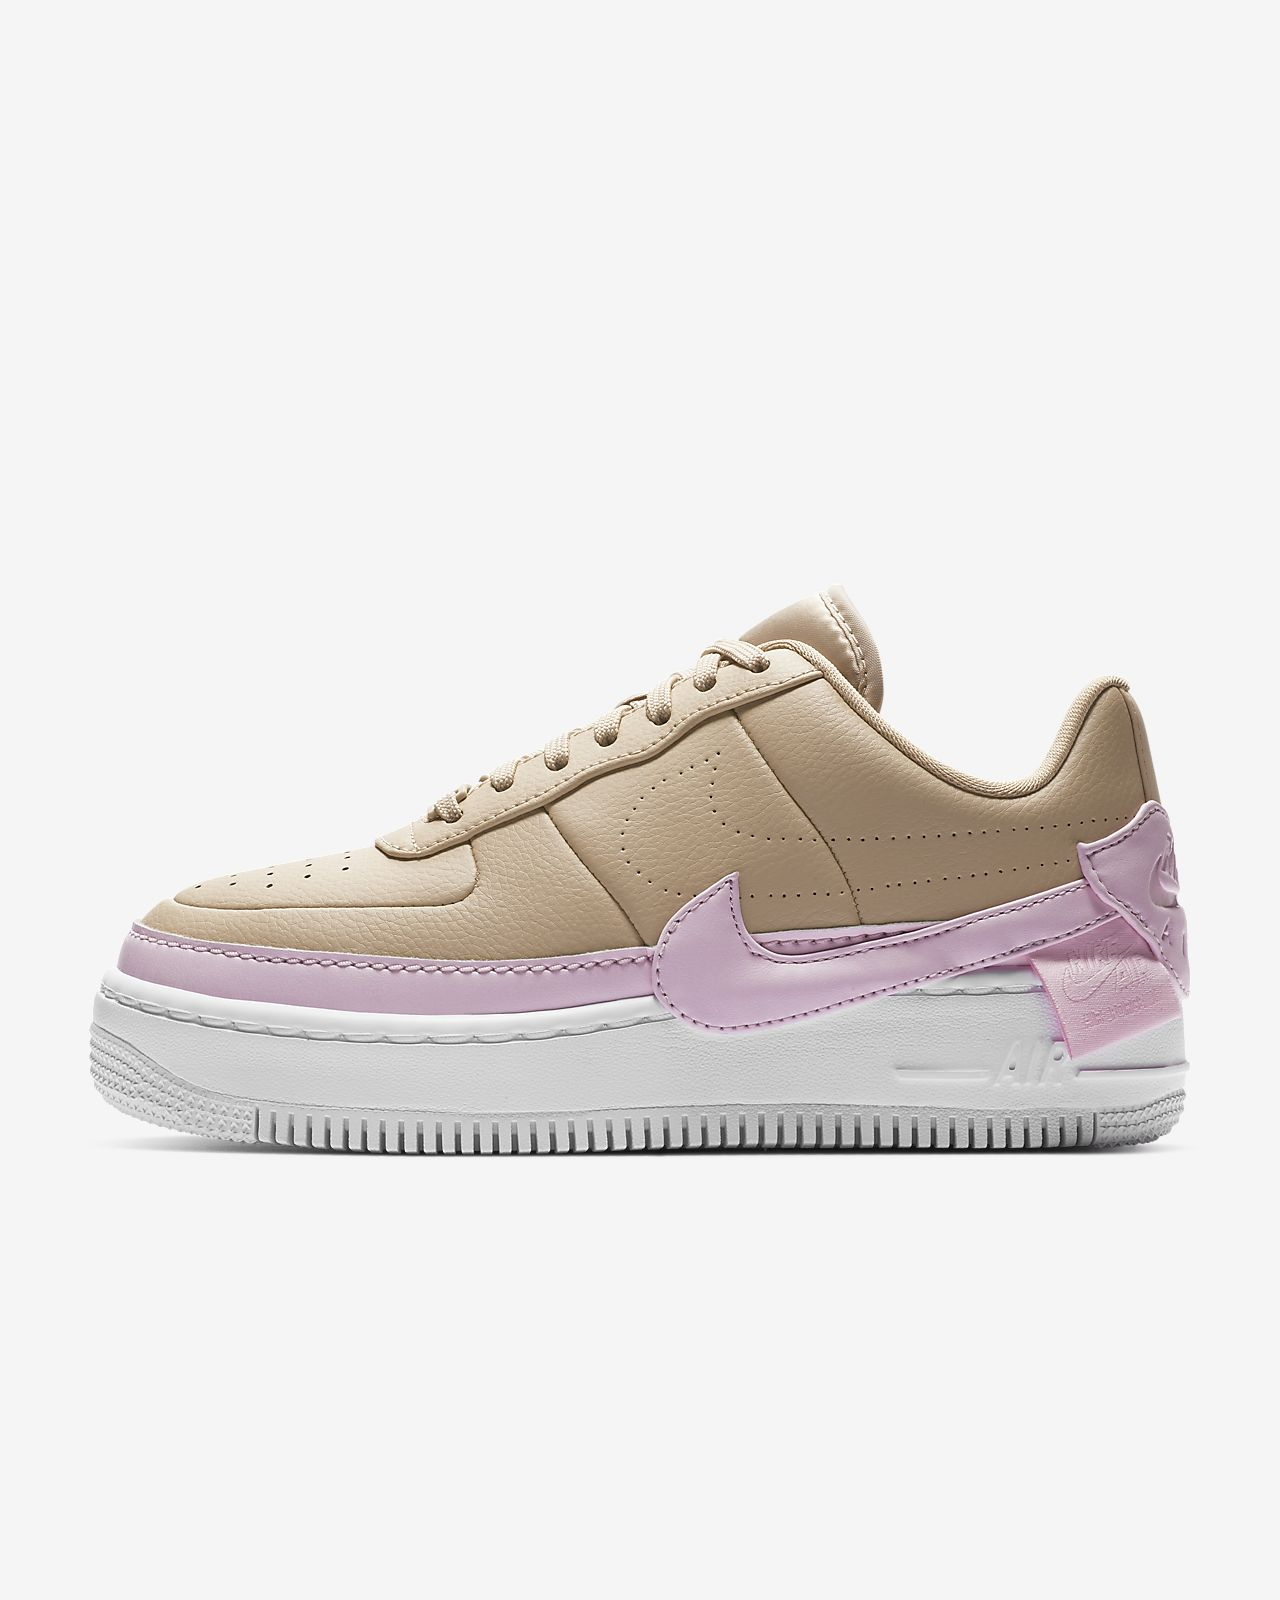 the best attitude 7e909 640c2 ... Chaussure Nike Air Force 1 Jester XX pour Femme